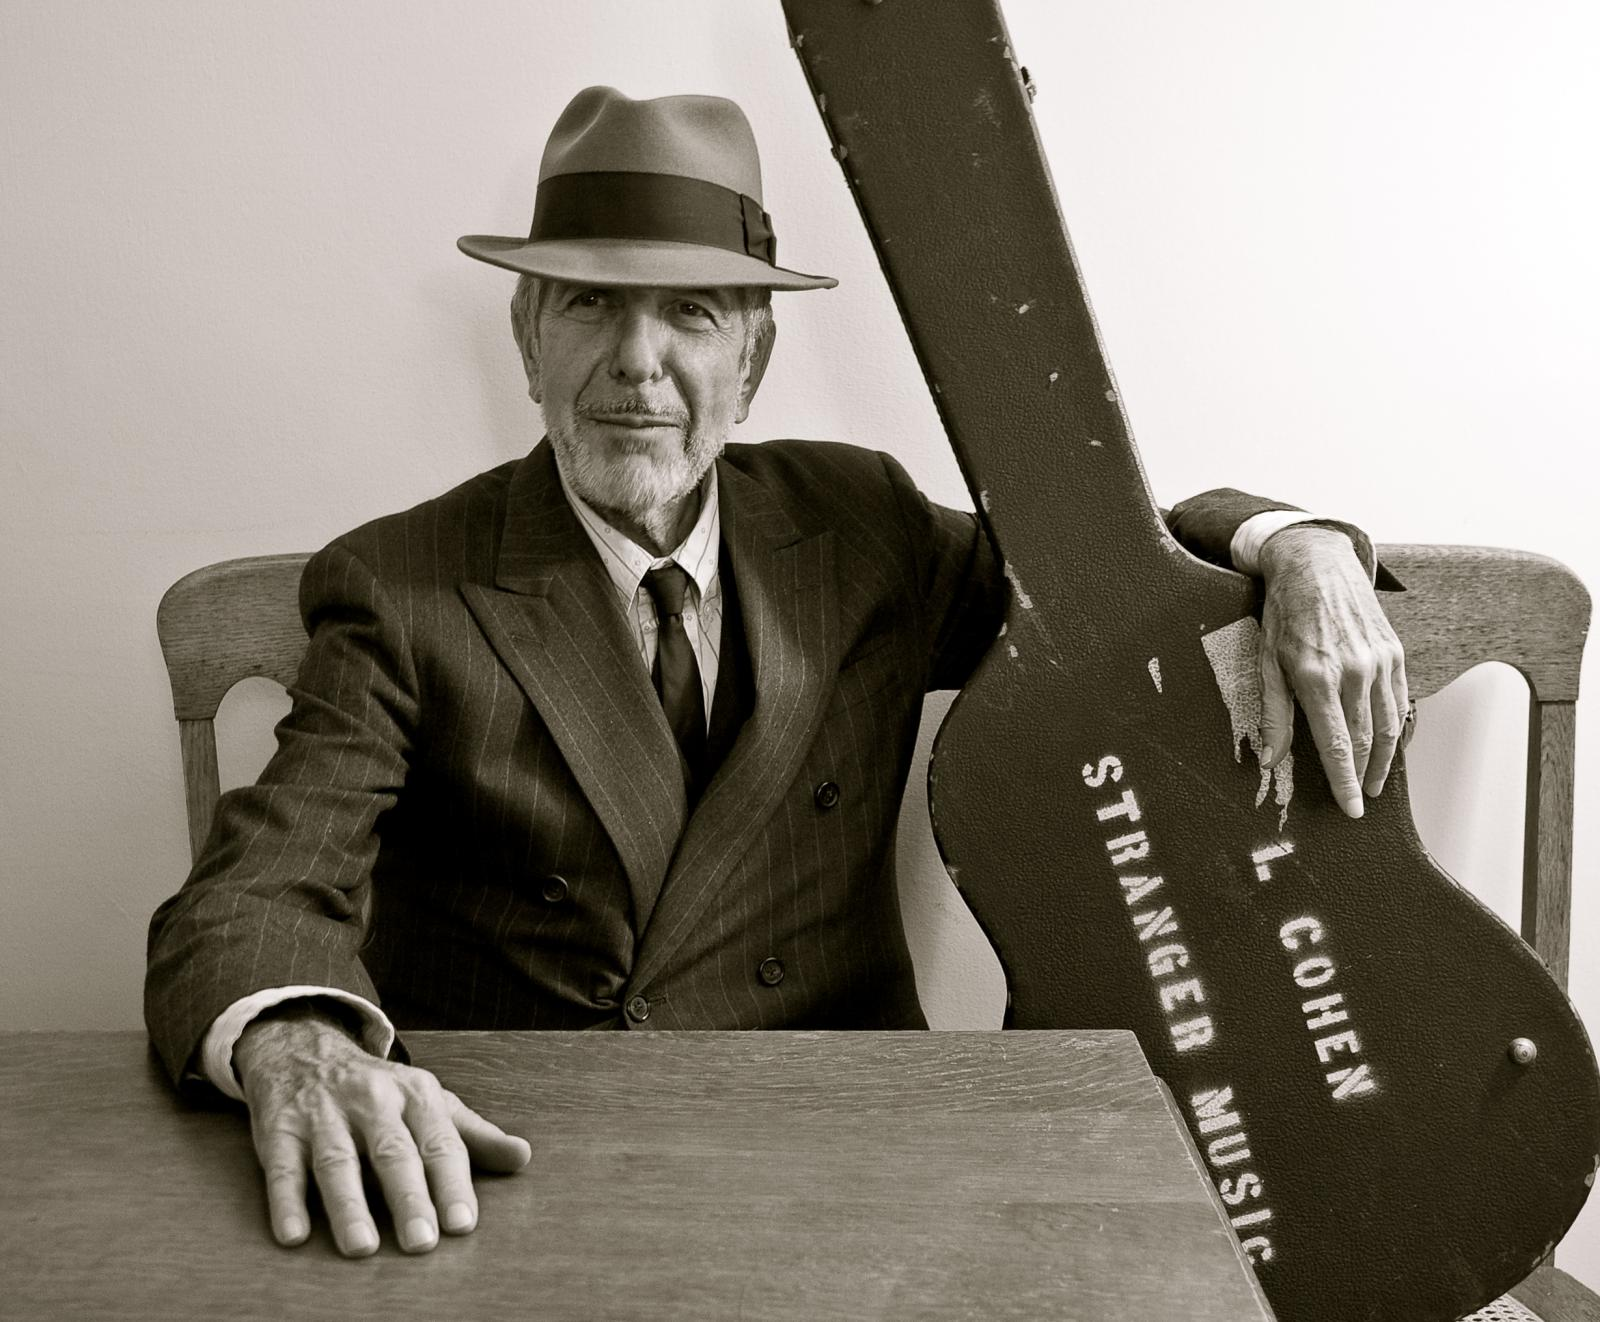 Leonard Cohen on Moonlight, the Mystique of Creativity, His Influences, and Why He Loves It When People Cover His Songs